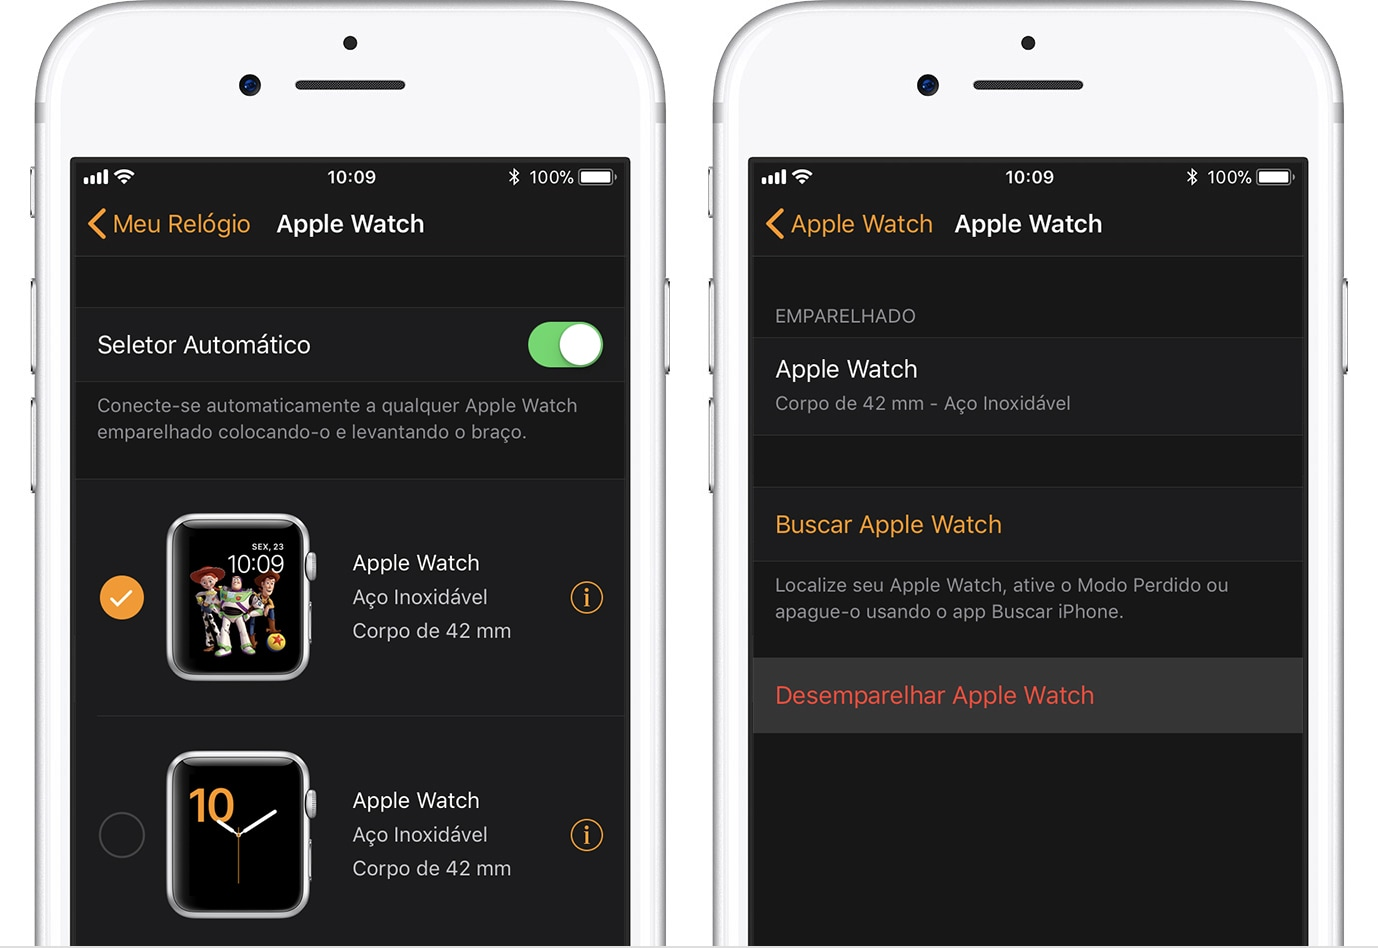 Desemparelhando o Apple Watch